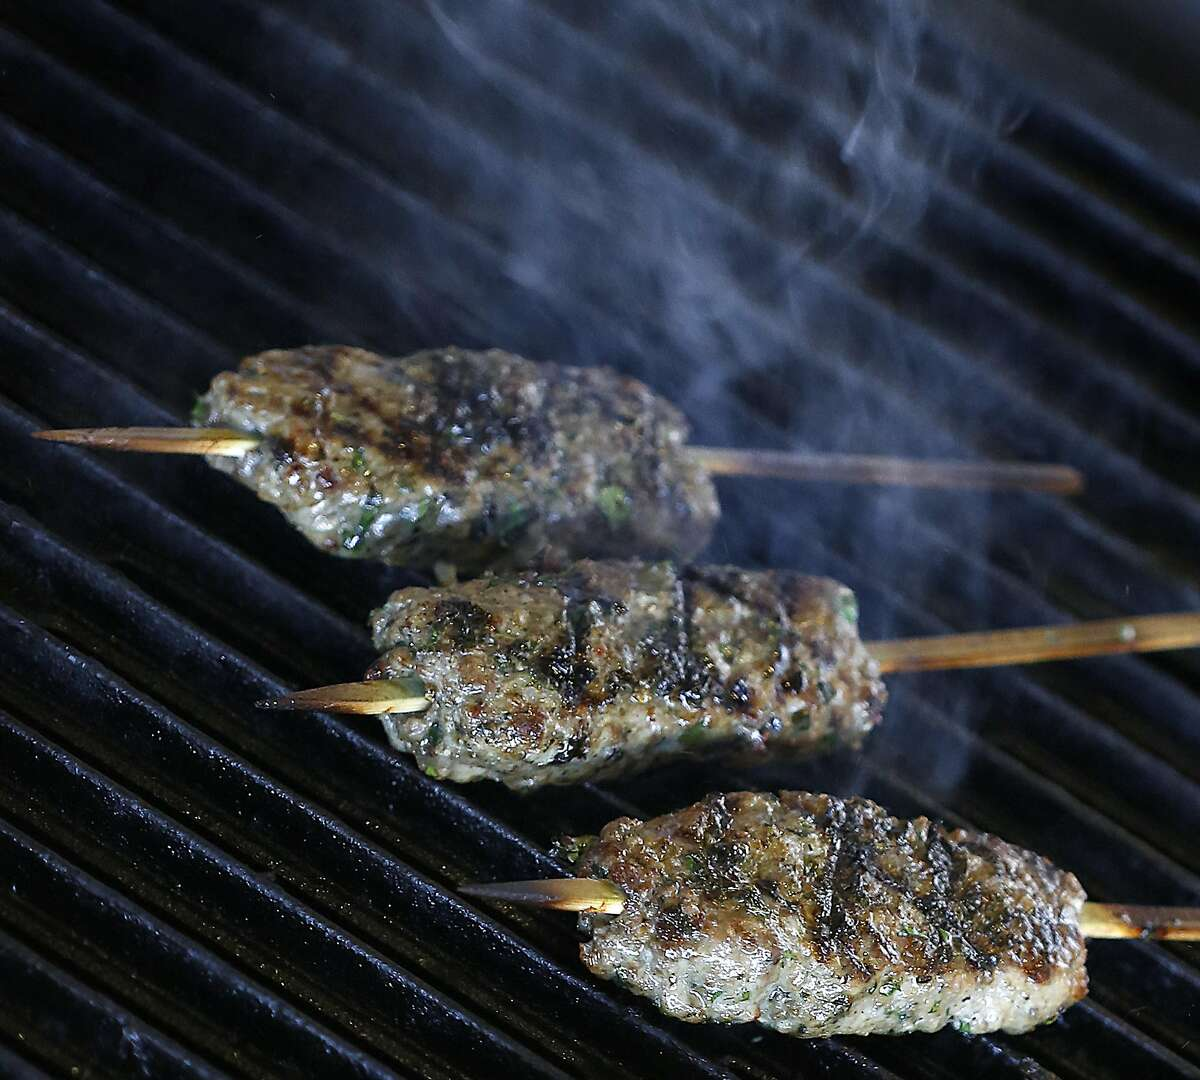 Lamb kebabs on the grill at the Kebabery on Tuesday, February 28, 2017, in Oakland, Calif.